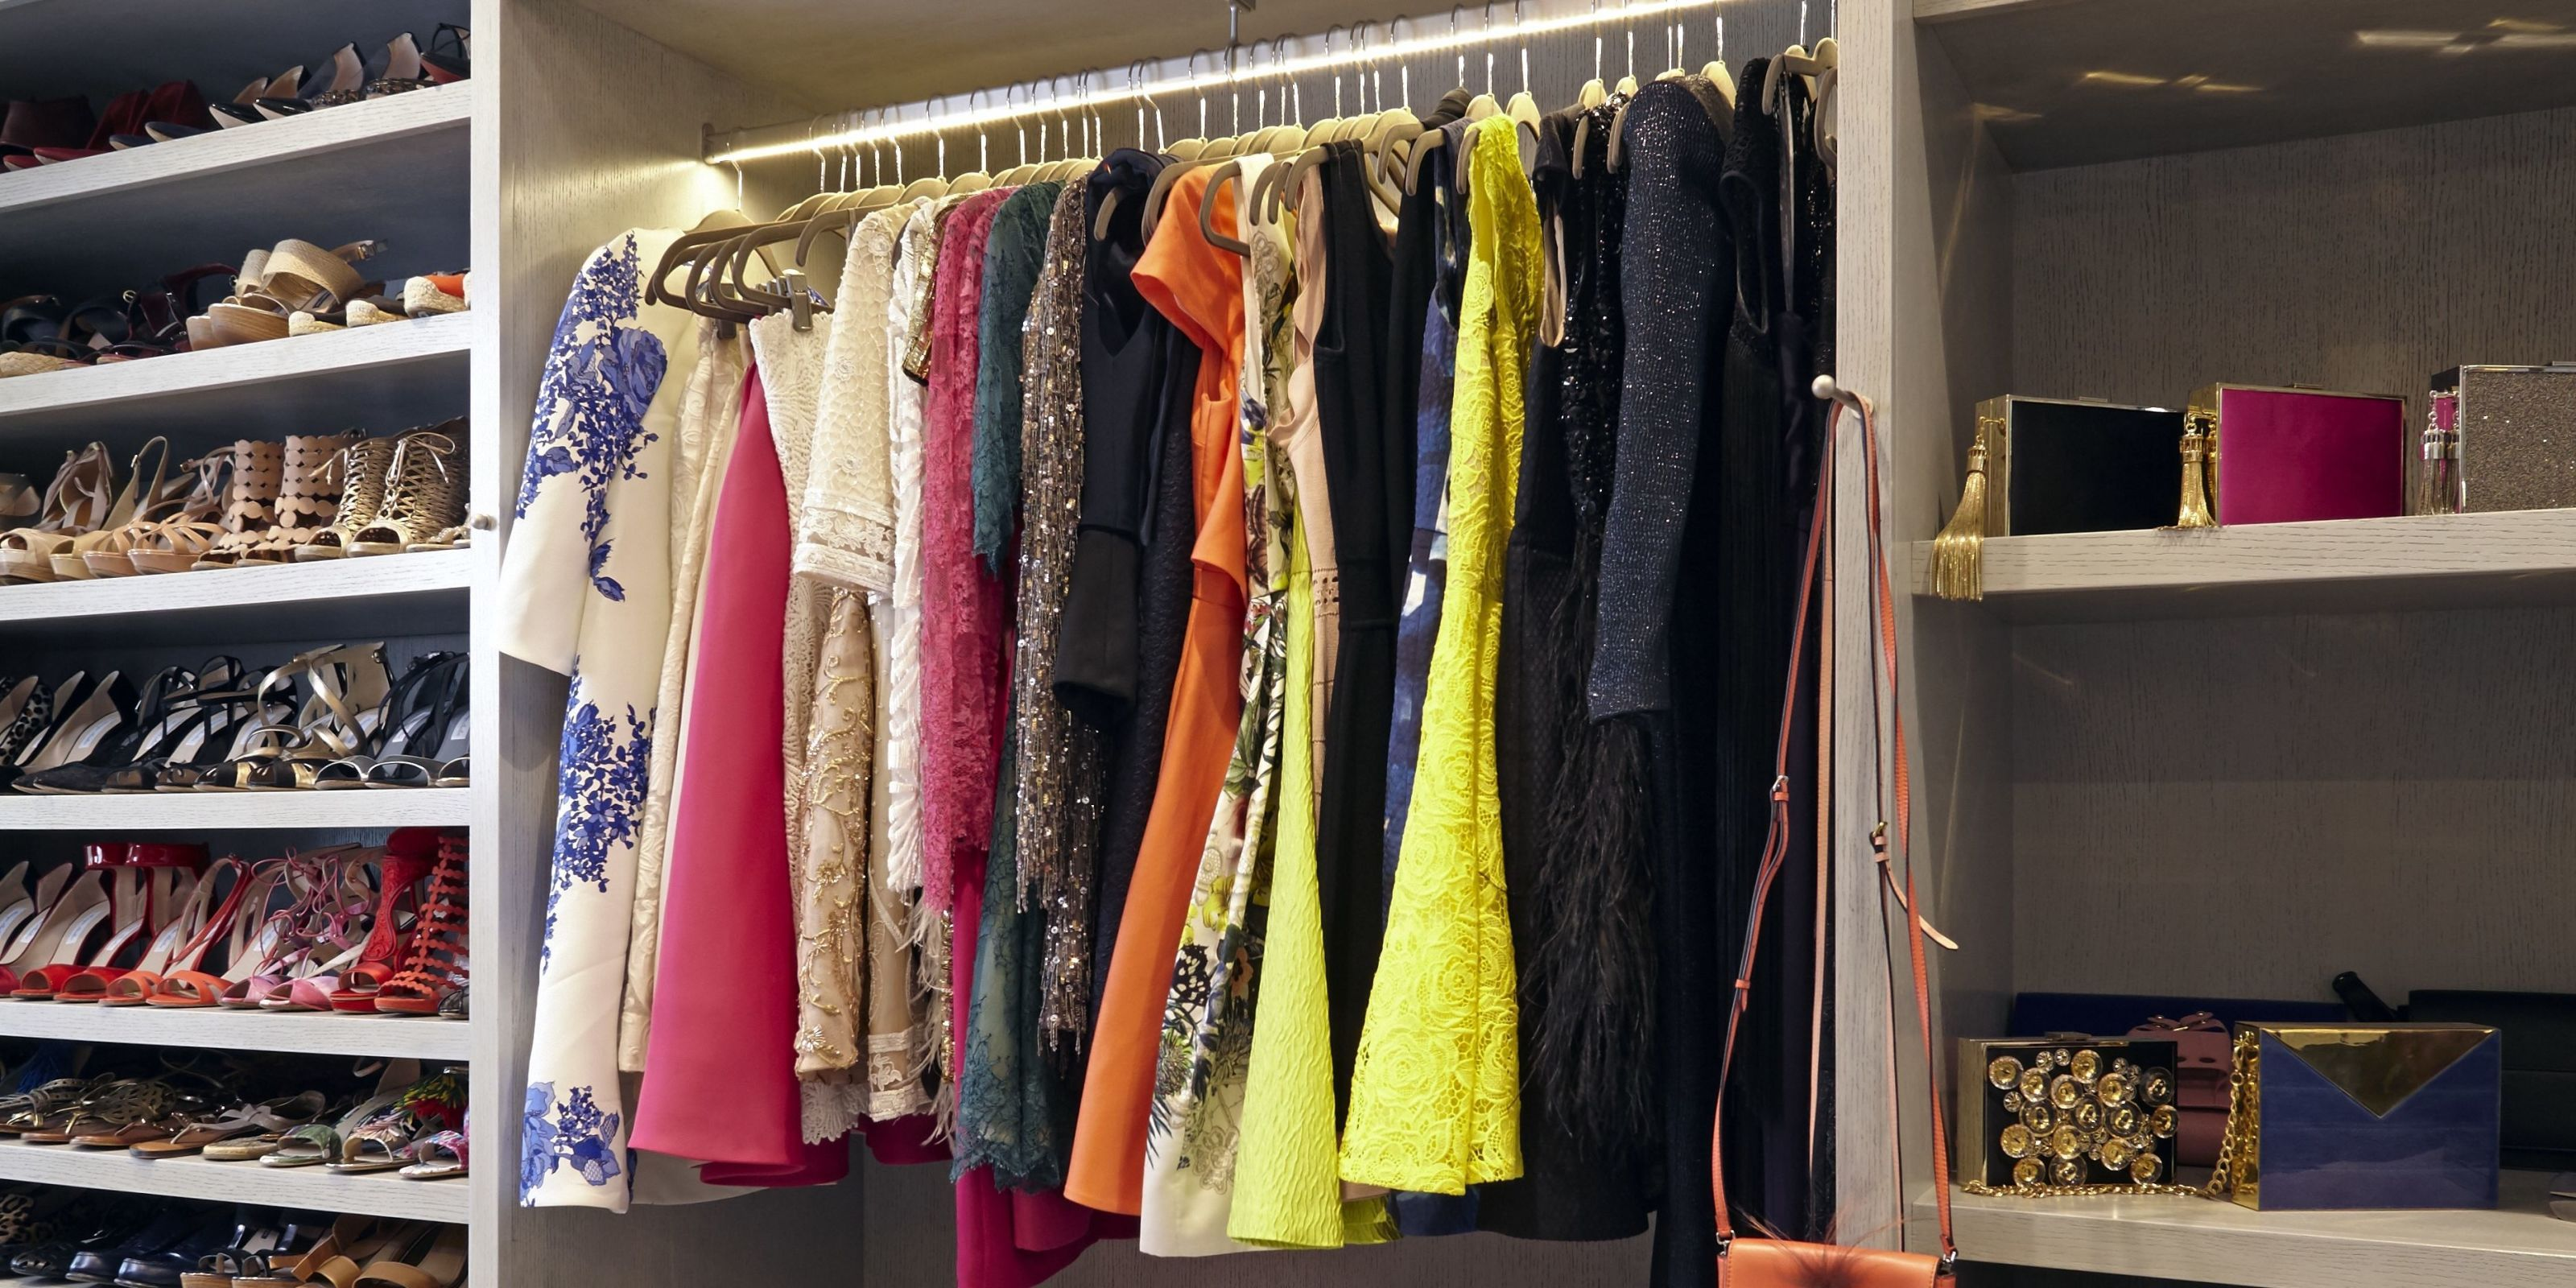 We Found The Celebrity Closet Of Our Dreams